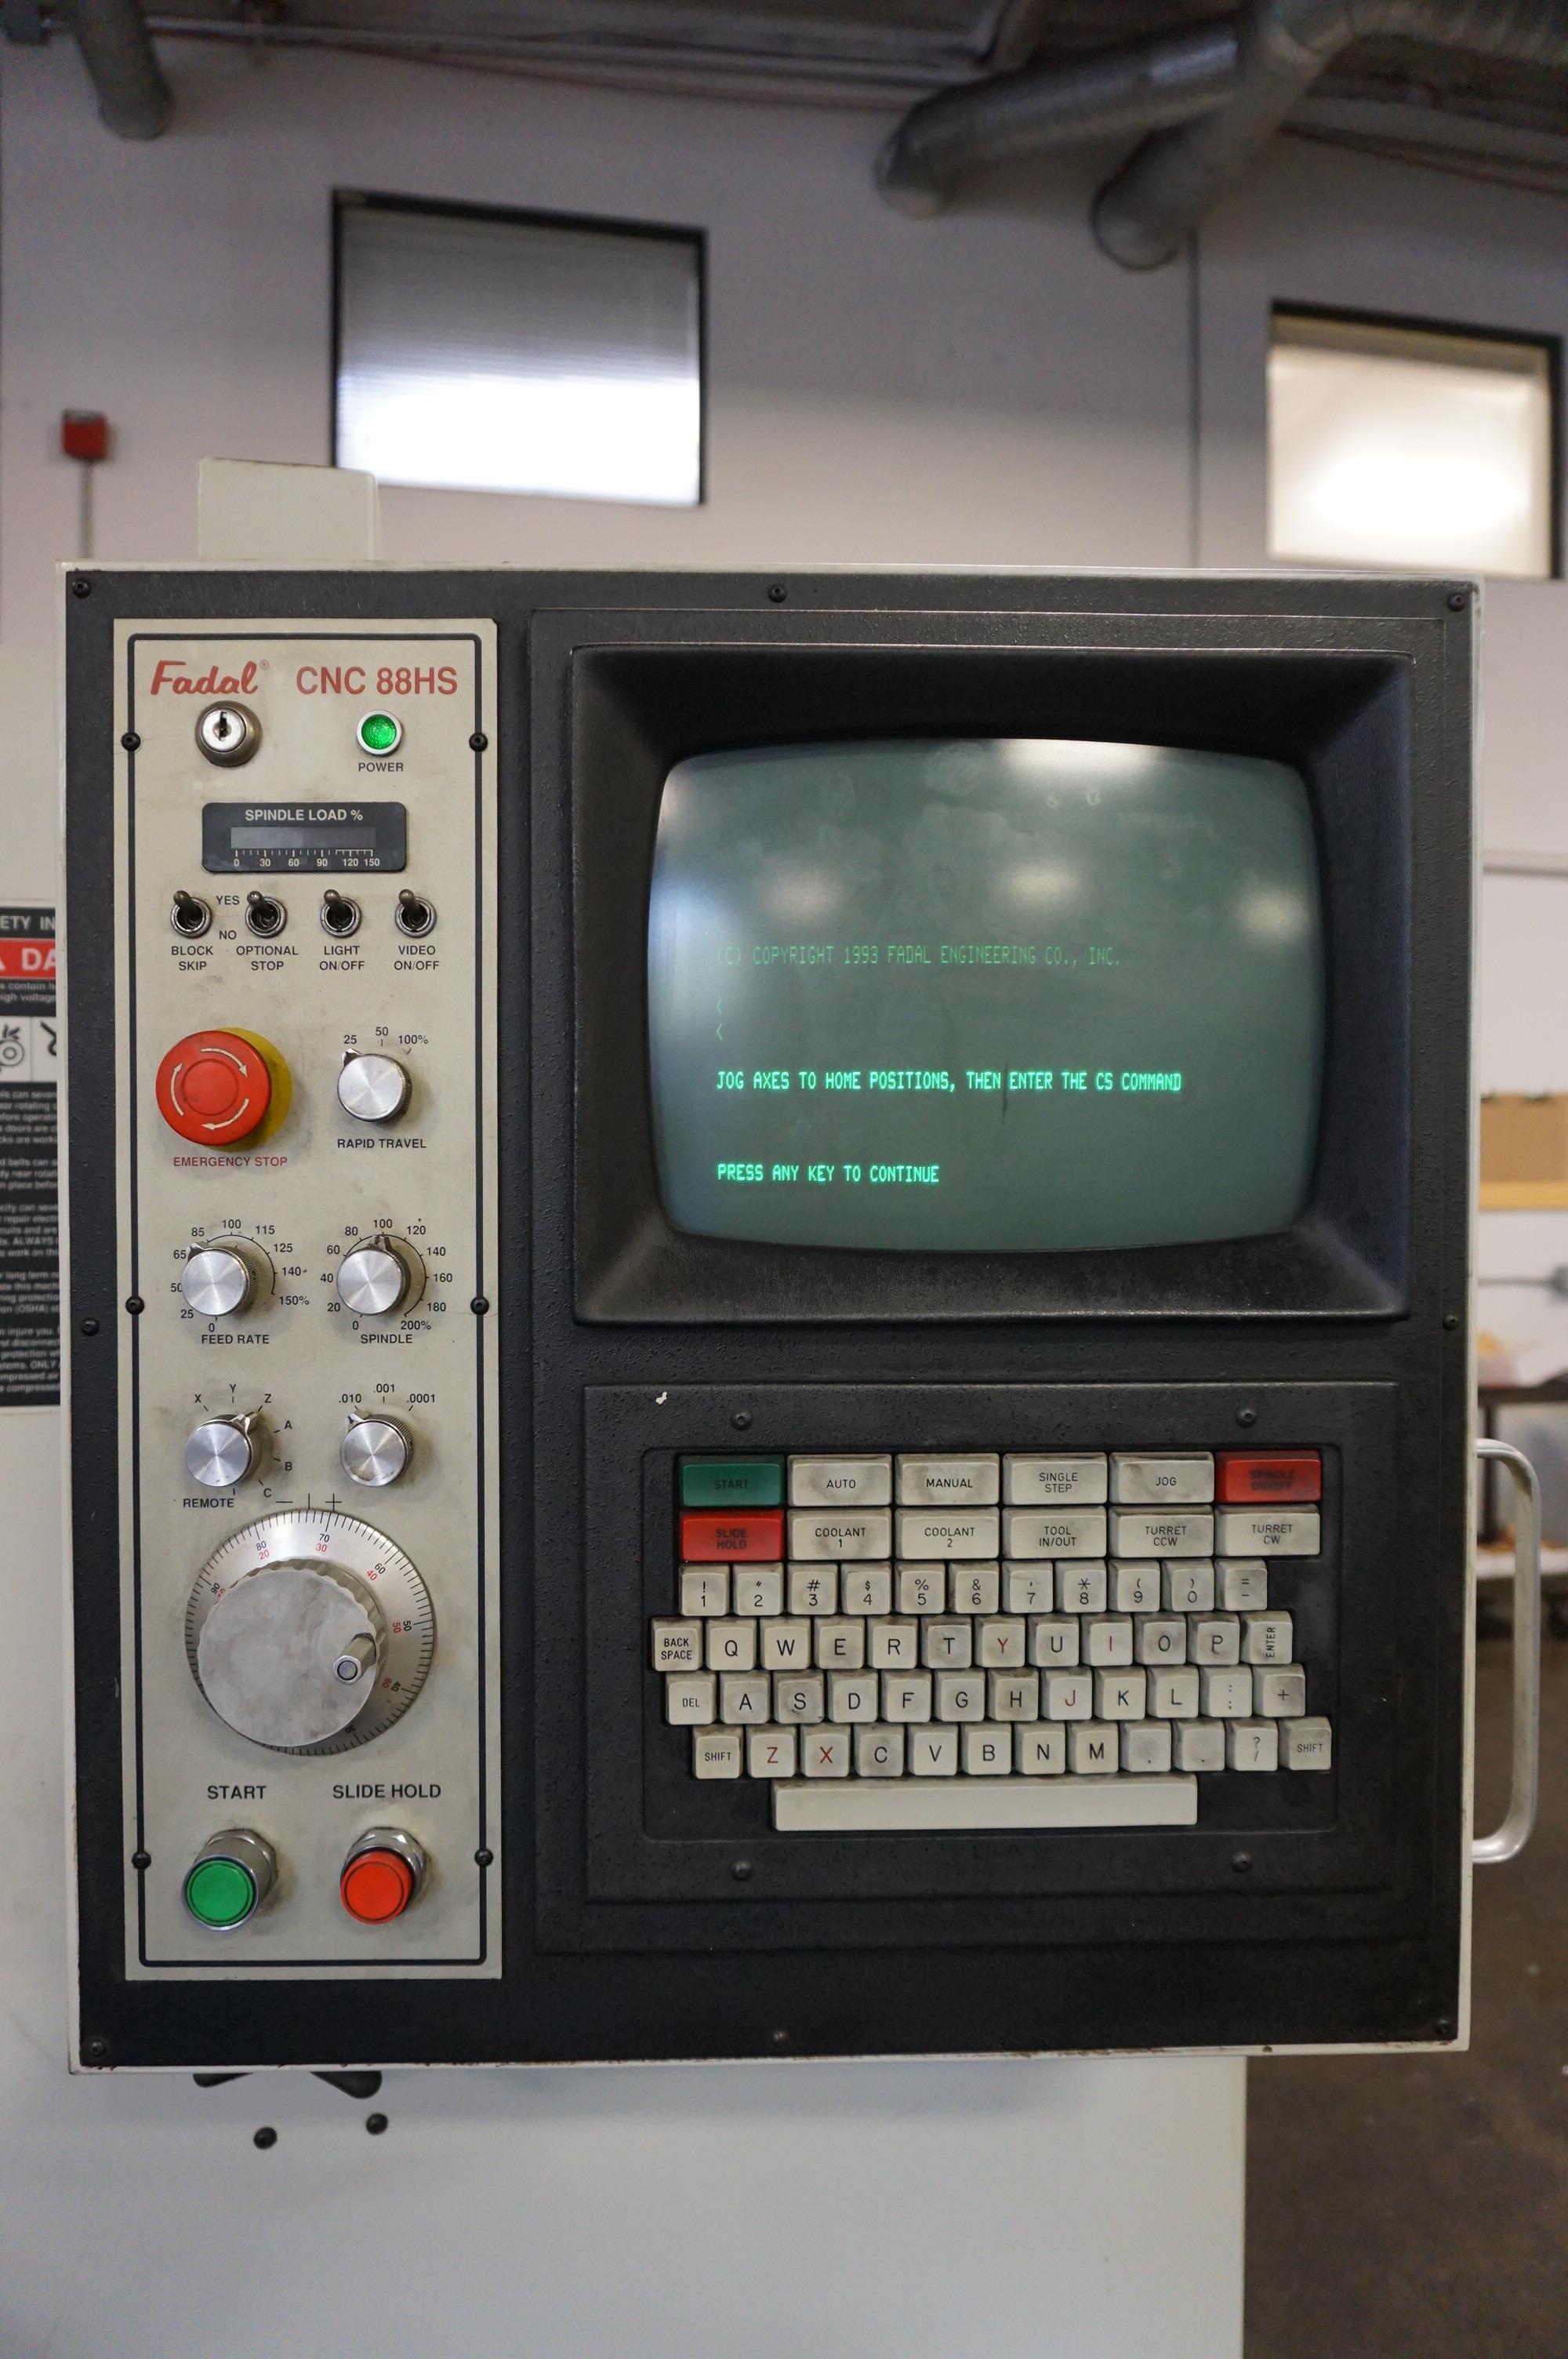 1995 FADAL VERTICAL MACHINING CENTER 3016 HT, S/N 9501703, 3 AXIS, WITH MANUALS - Image 8 of 12